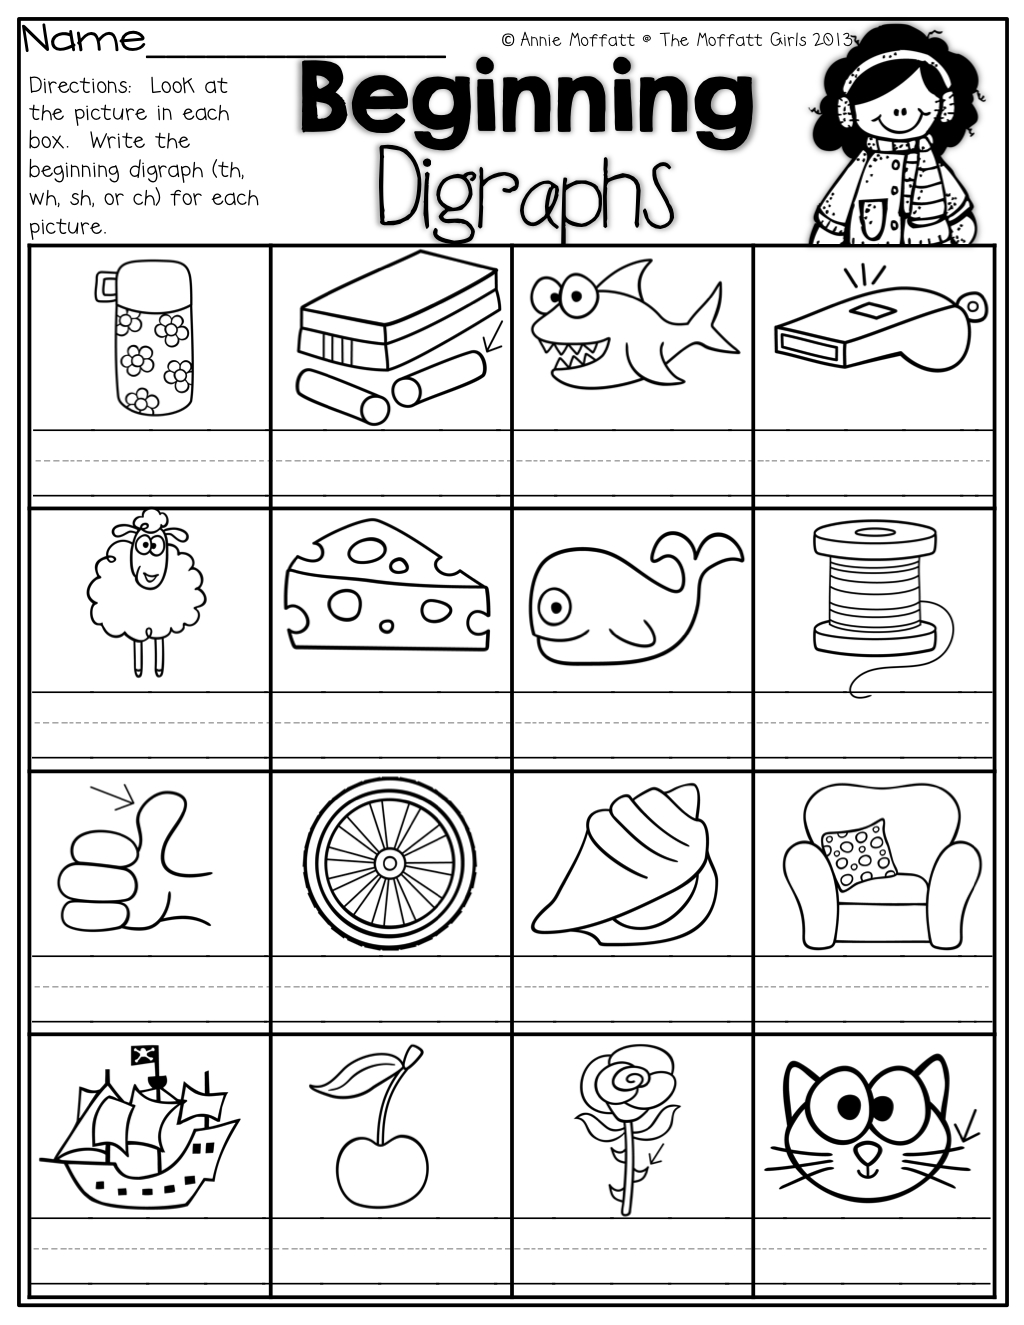 Beginning Digraphs! Write The Beginning Digraphs For Each Picture - Free Printable Ch Digraph Worksheets